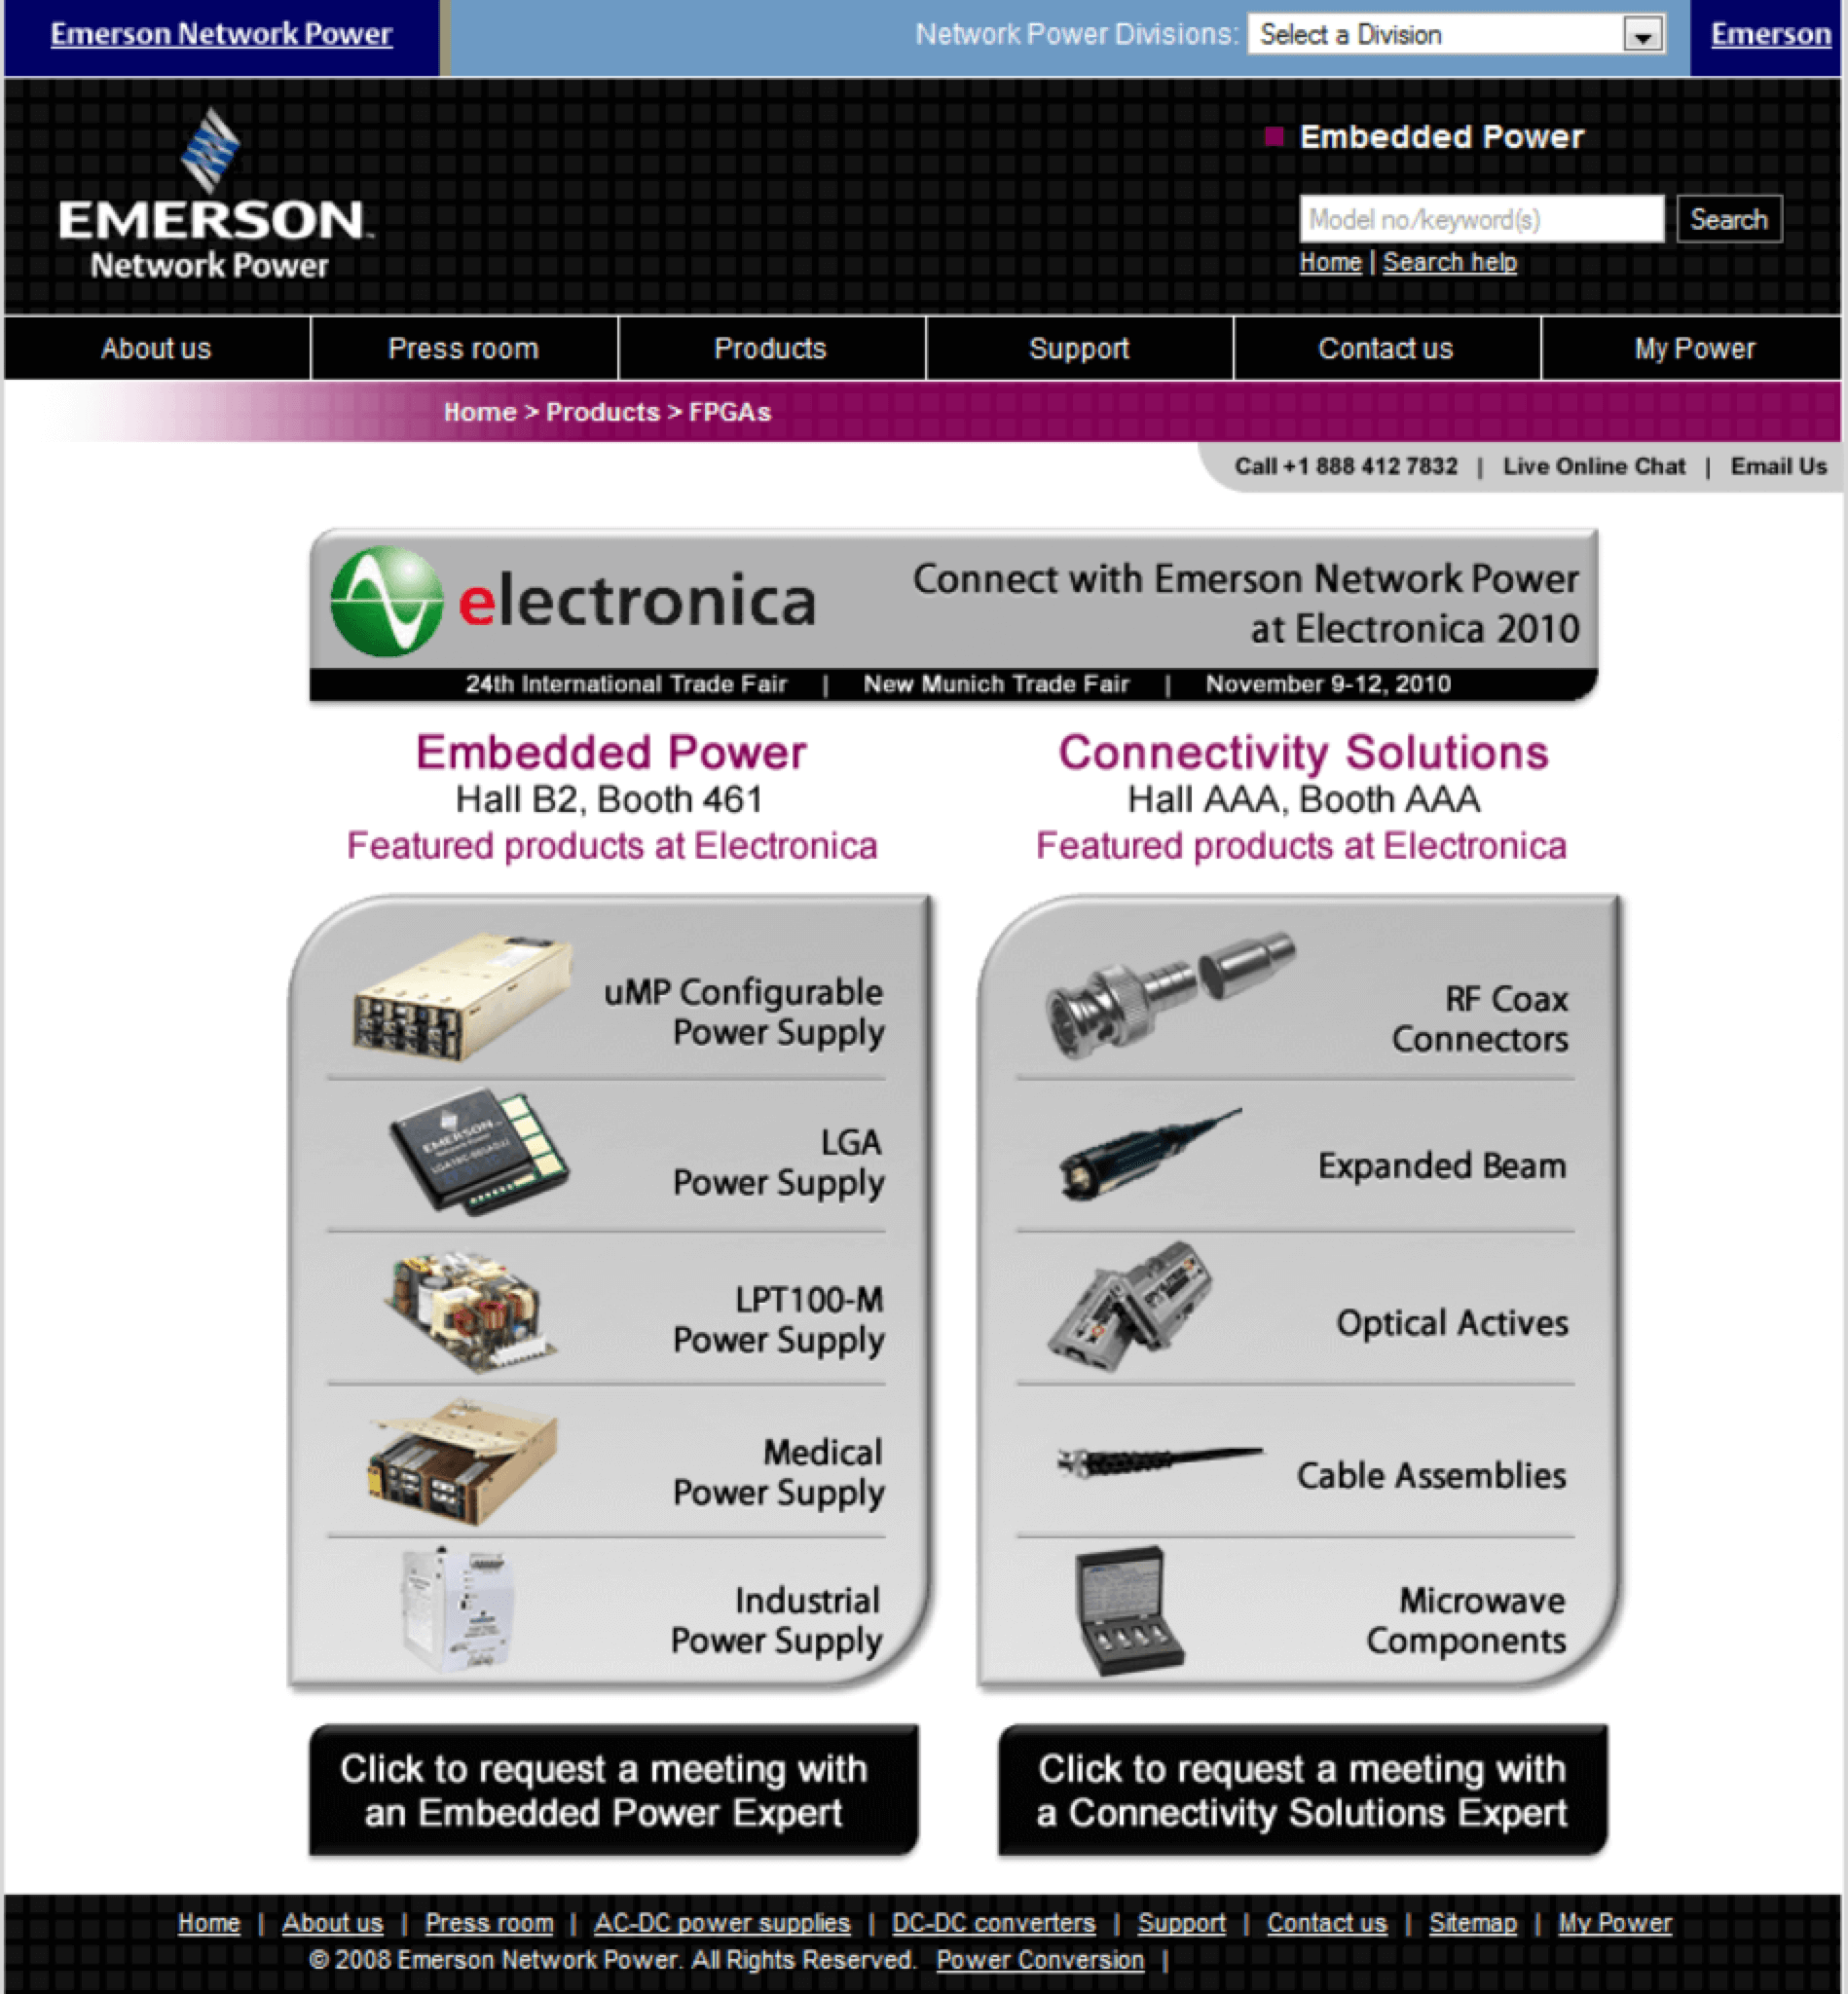 Emerson-AC-DC-Power-Supplies-DC-DC-Converters-Website-Design-Electronica-1